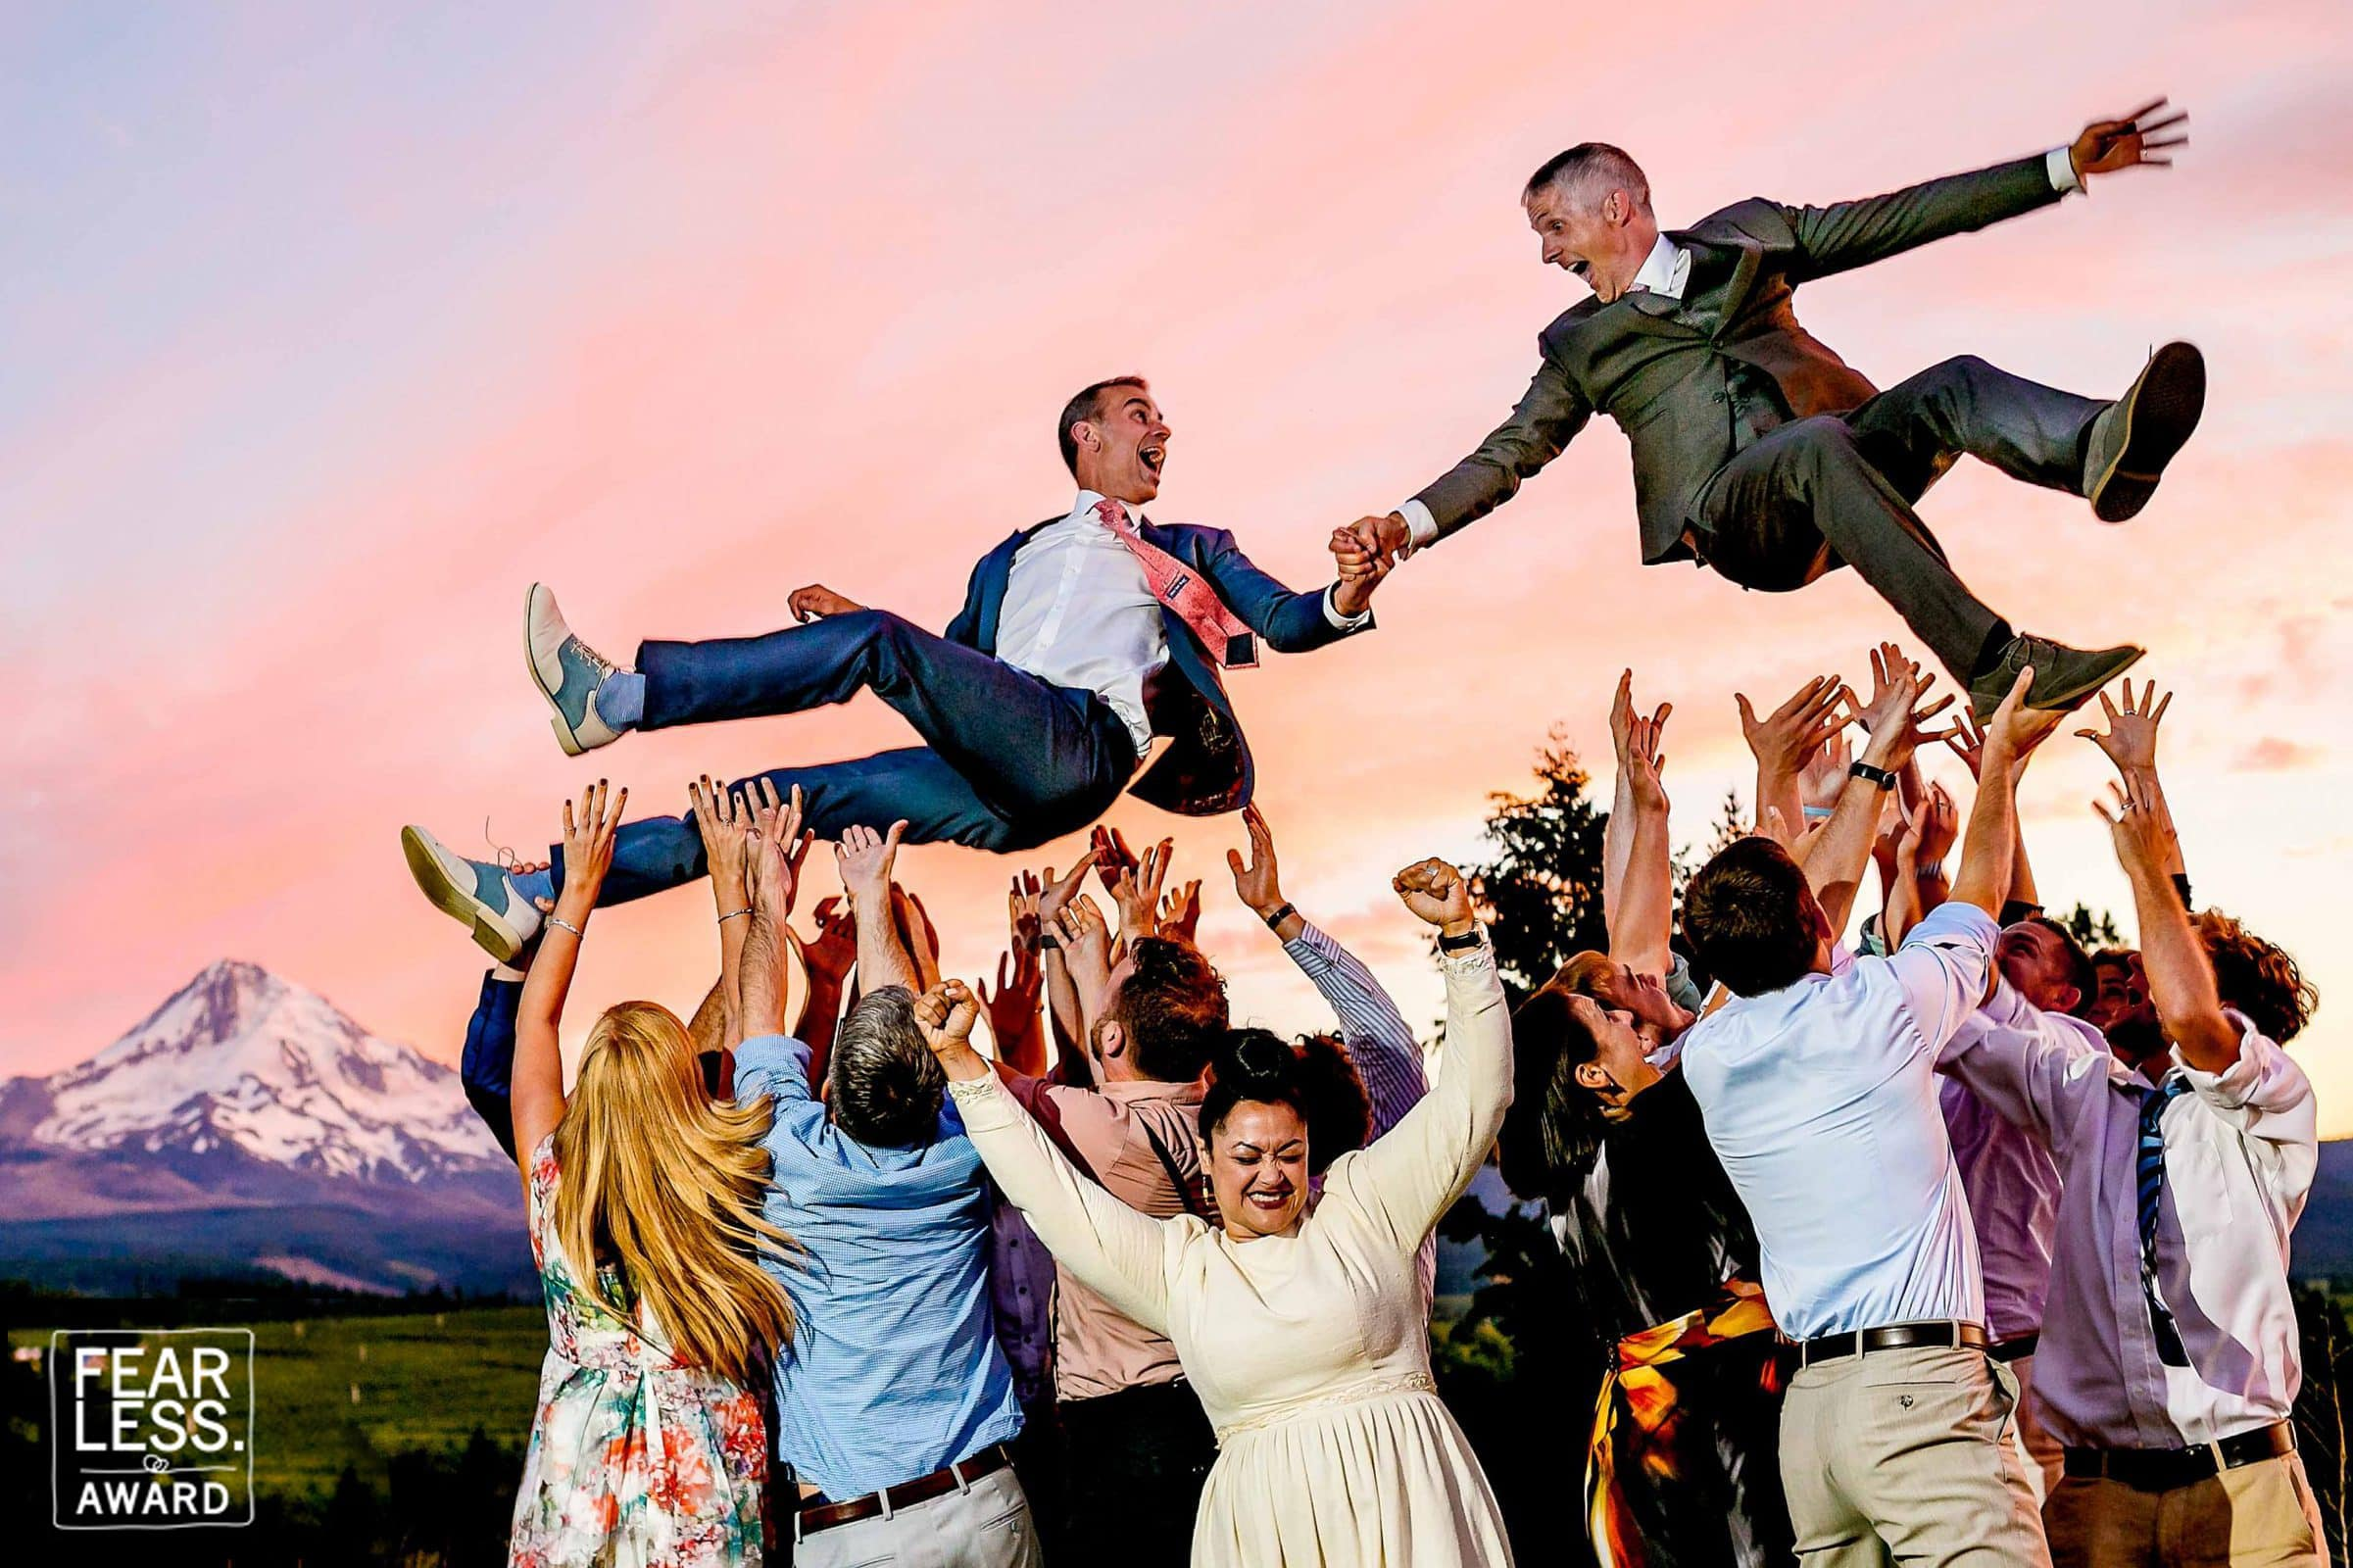 Fearless Photographers award winning photo of two grooms flying in the air holding hands above guests with a mountain view during their Mt Hood Organic Farms Wedding just outside Hood River, Oregon